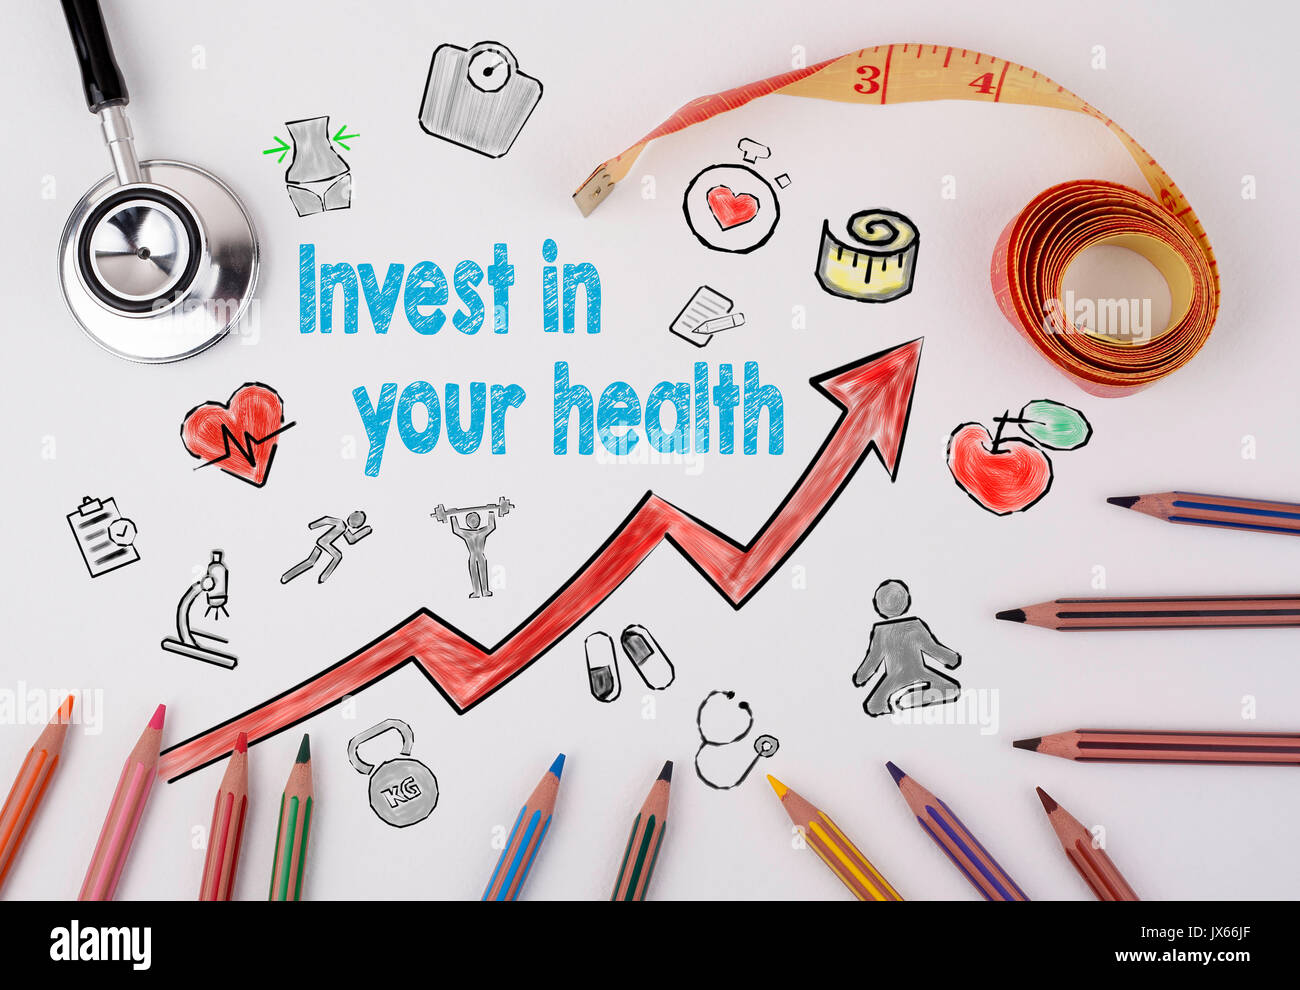 Invest in your health concept. Healty lifestyle background. Stock Photo